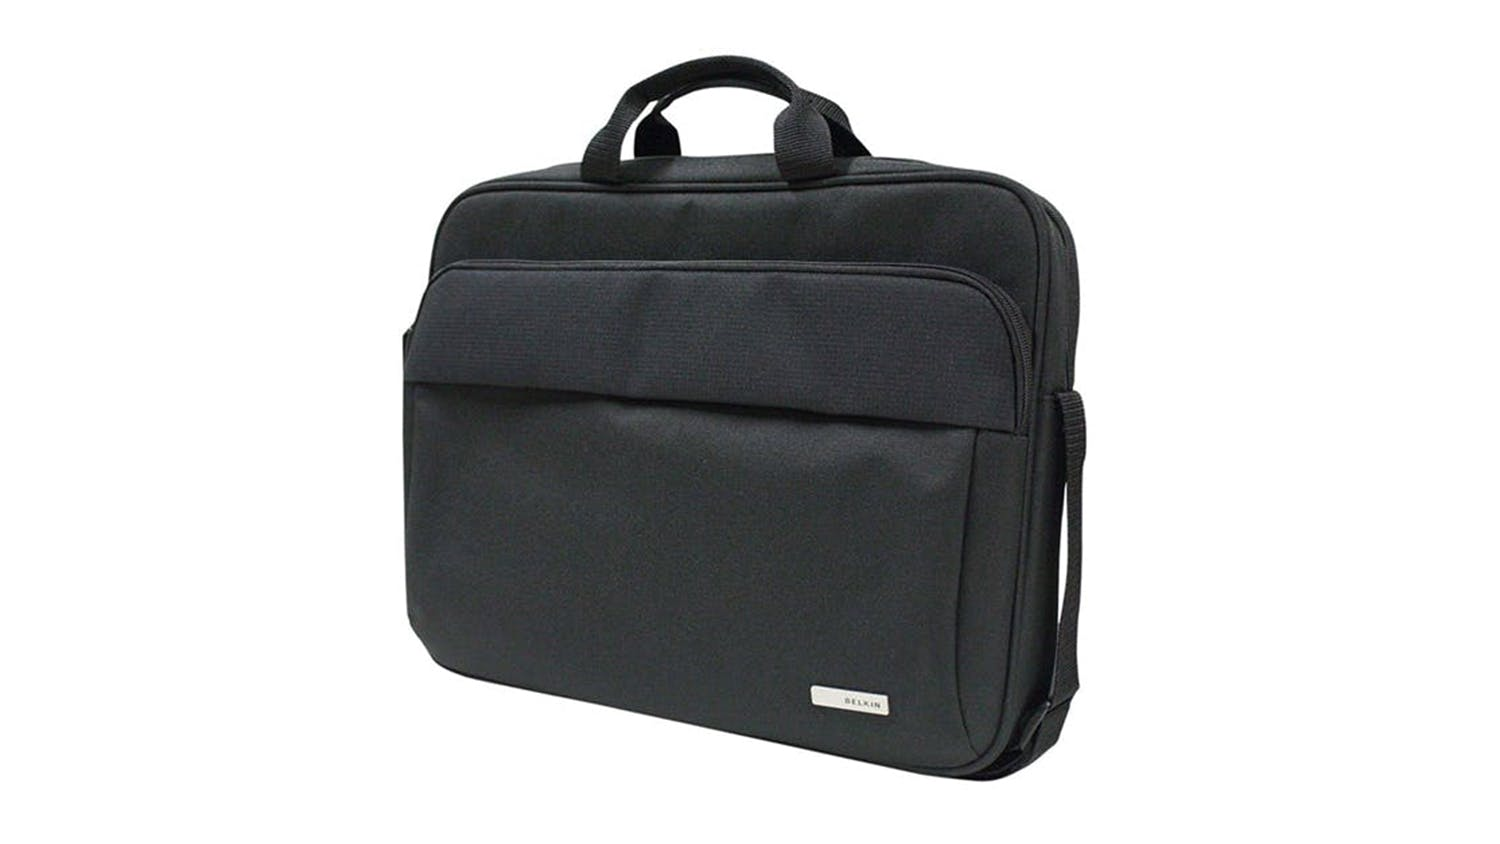 "Belkin 16"" Basic Toploader Laptop Bag"